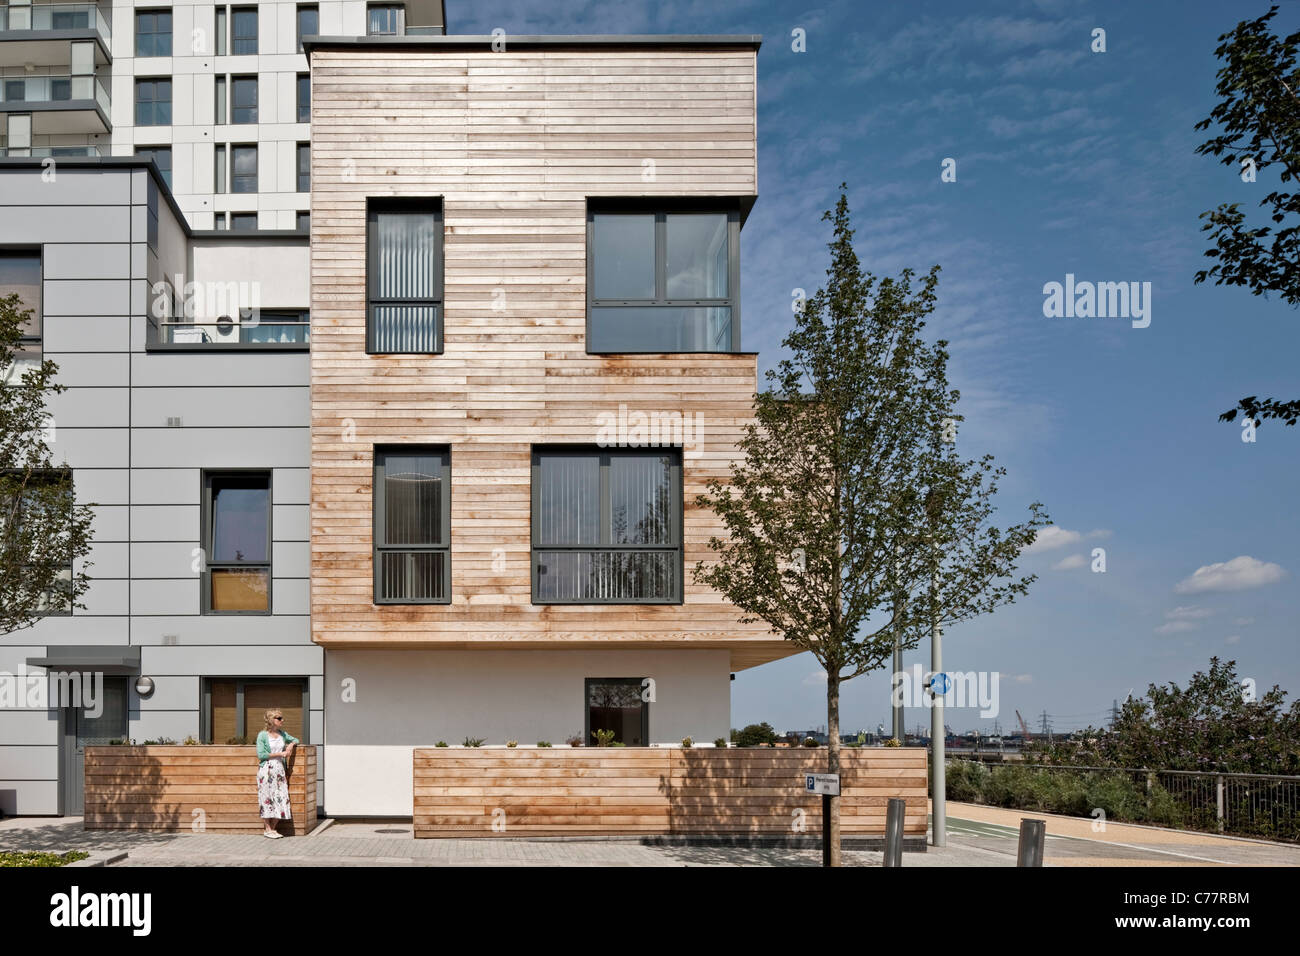 City Apartments Tunjic à Greenwich, Londres. Photo Stock